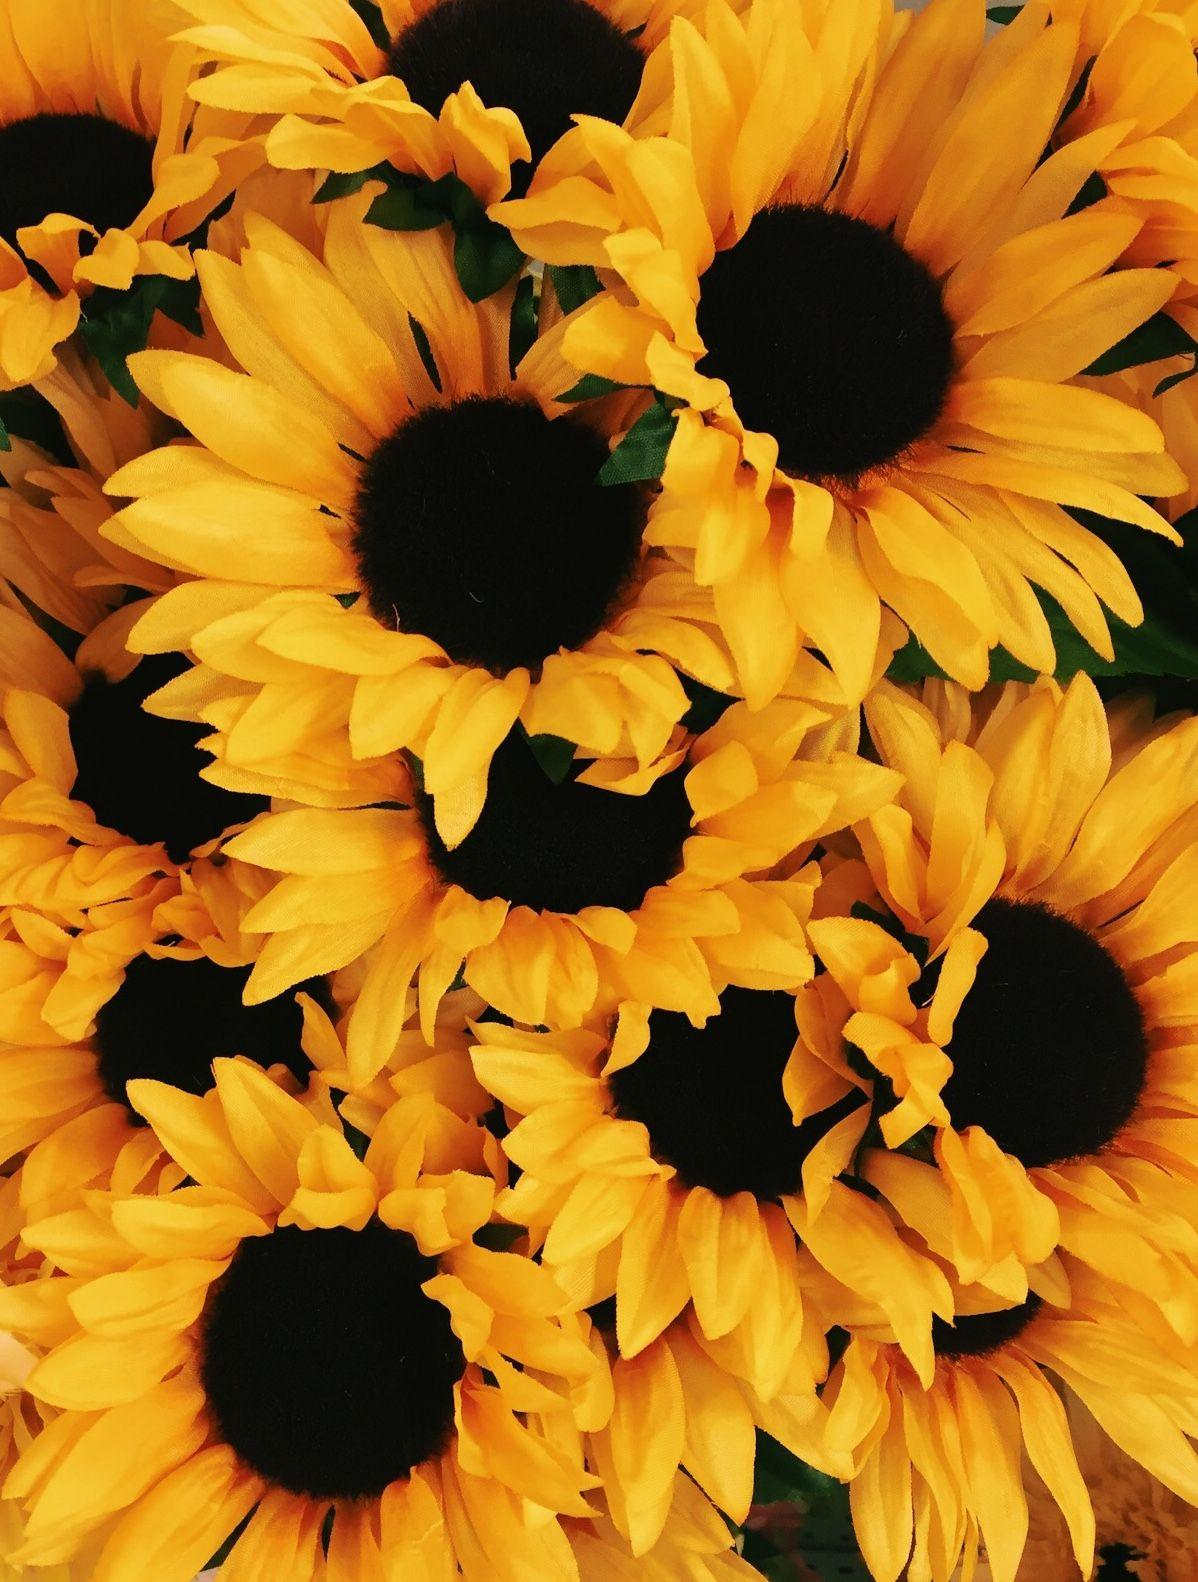 Aesthetic Sunflower Wallpapers - Wallpaper Cave